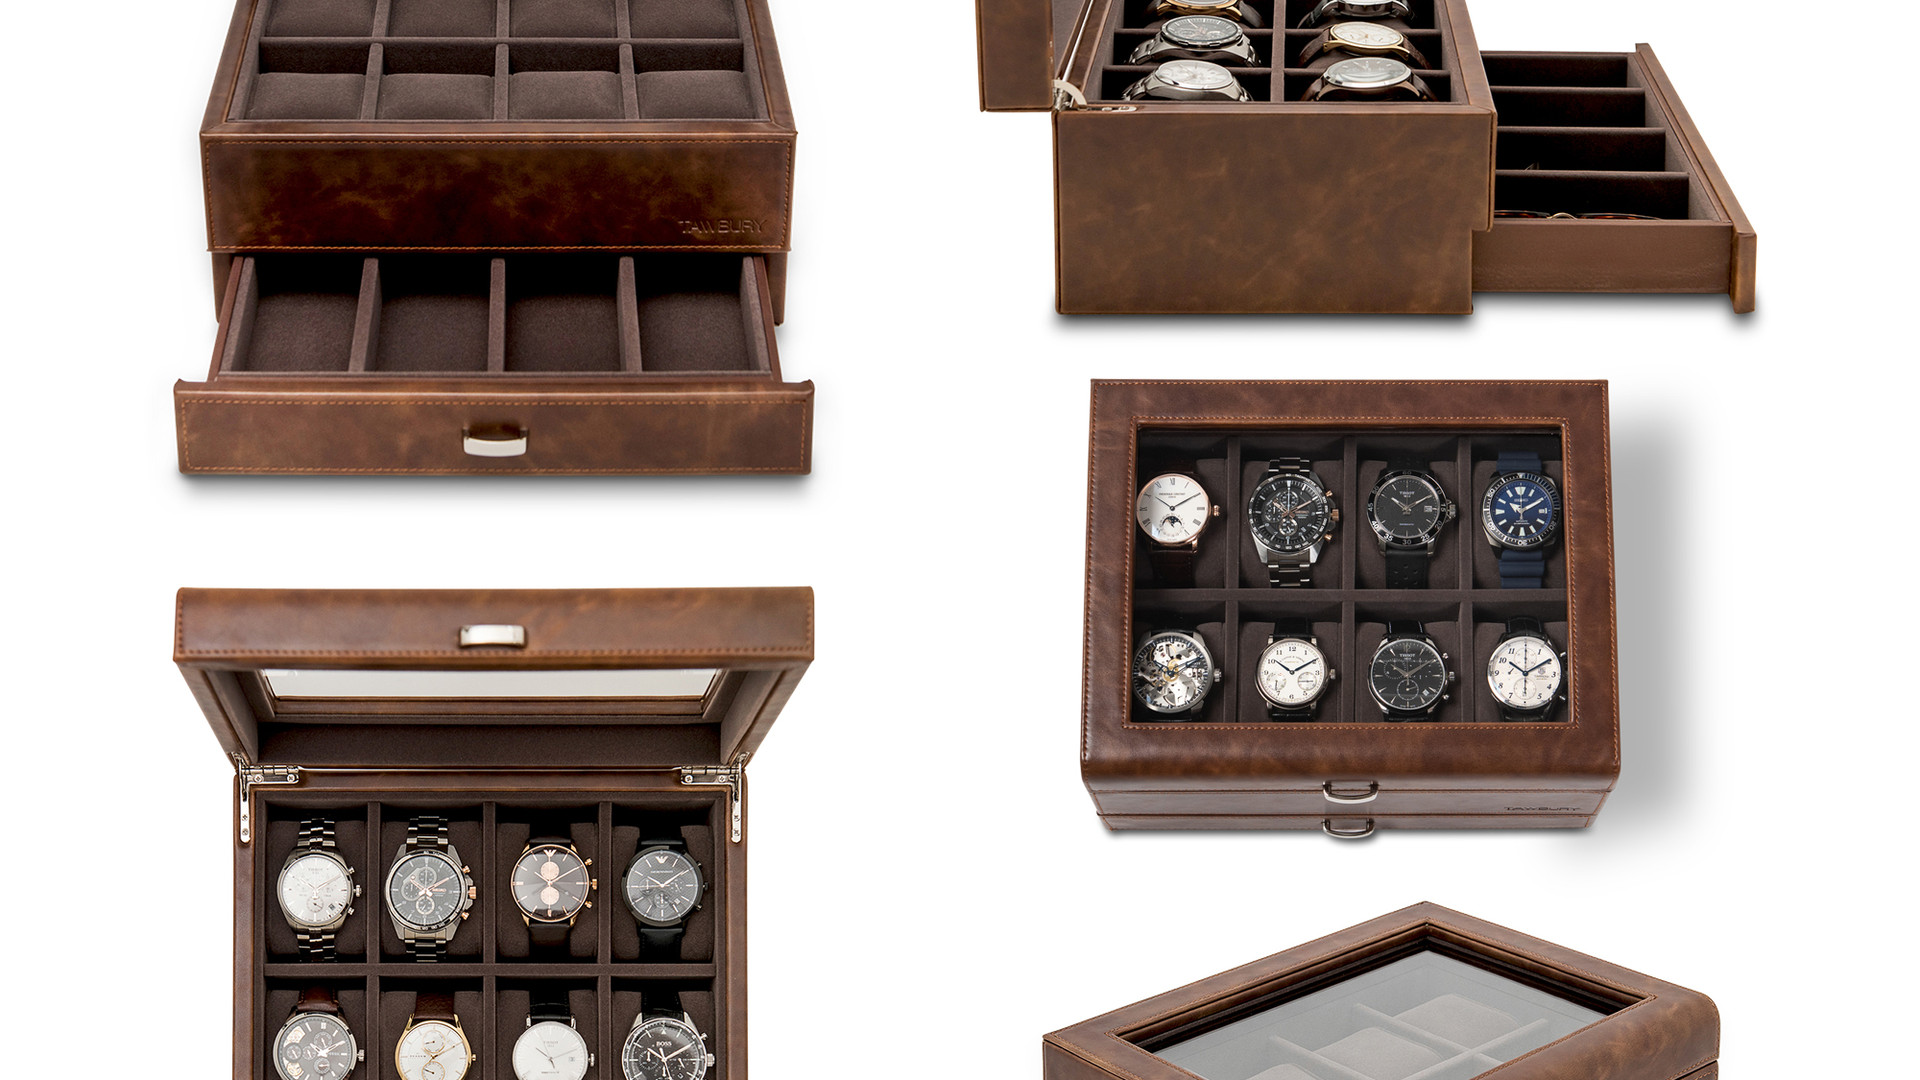 commercial product photography, commercial product photographer, studio product photography,  studio product photographer, location product photography, location product photographer, styled product photography, styled product photographer, styled photo shoot, sydney product photographer, media release, amazon product photographer, amazon product photography, ecommerce product photography, ecommerce product photographer, watch holder, watch box, watch case, watch box with jewellery display draw, homewares photographer, watch box photographer, deepetched, white background, pure white background, amazon marketplace, brand imaging, hero image, product listing, infographics